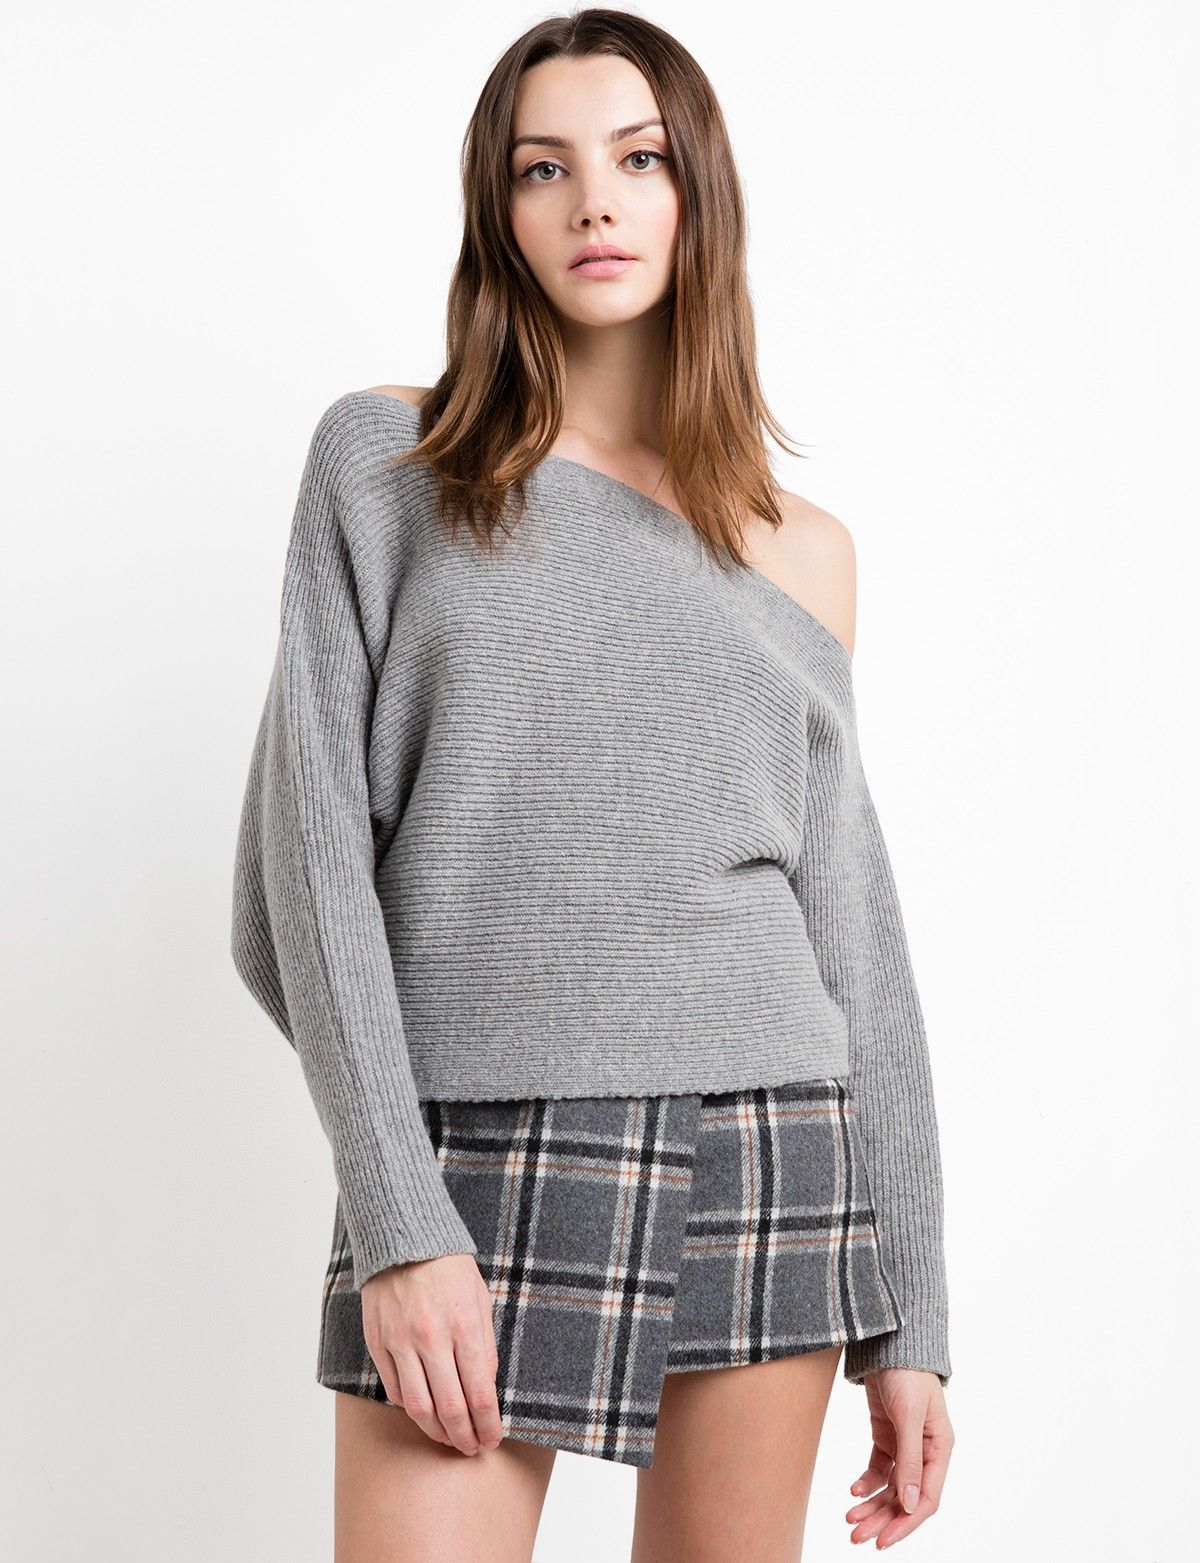 Crop One Shoulder Grey Sweater by J.O.A | New Arrivals | Pinterest ...